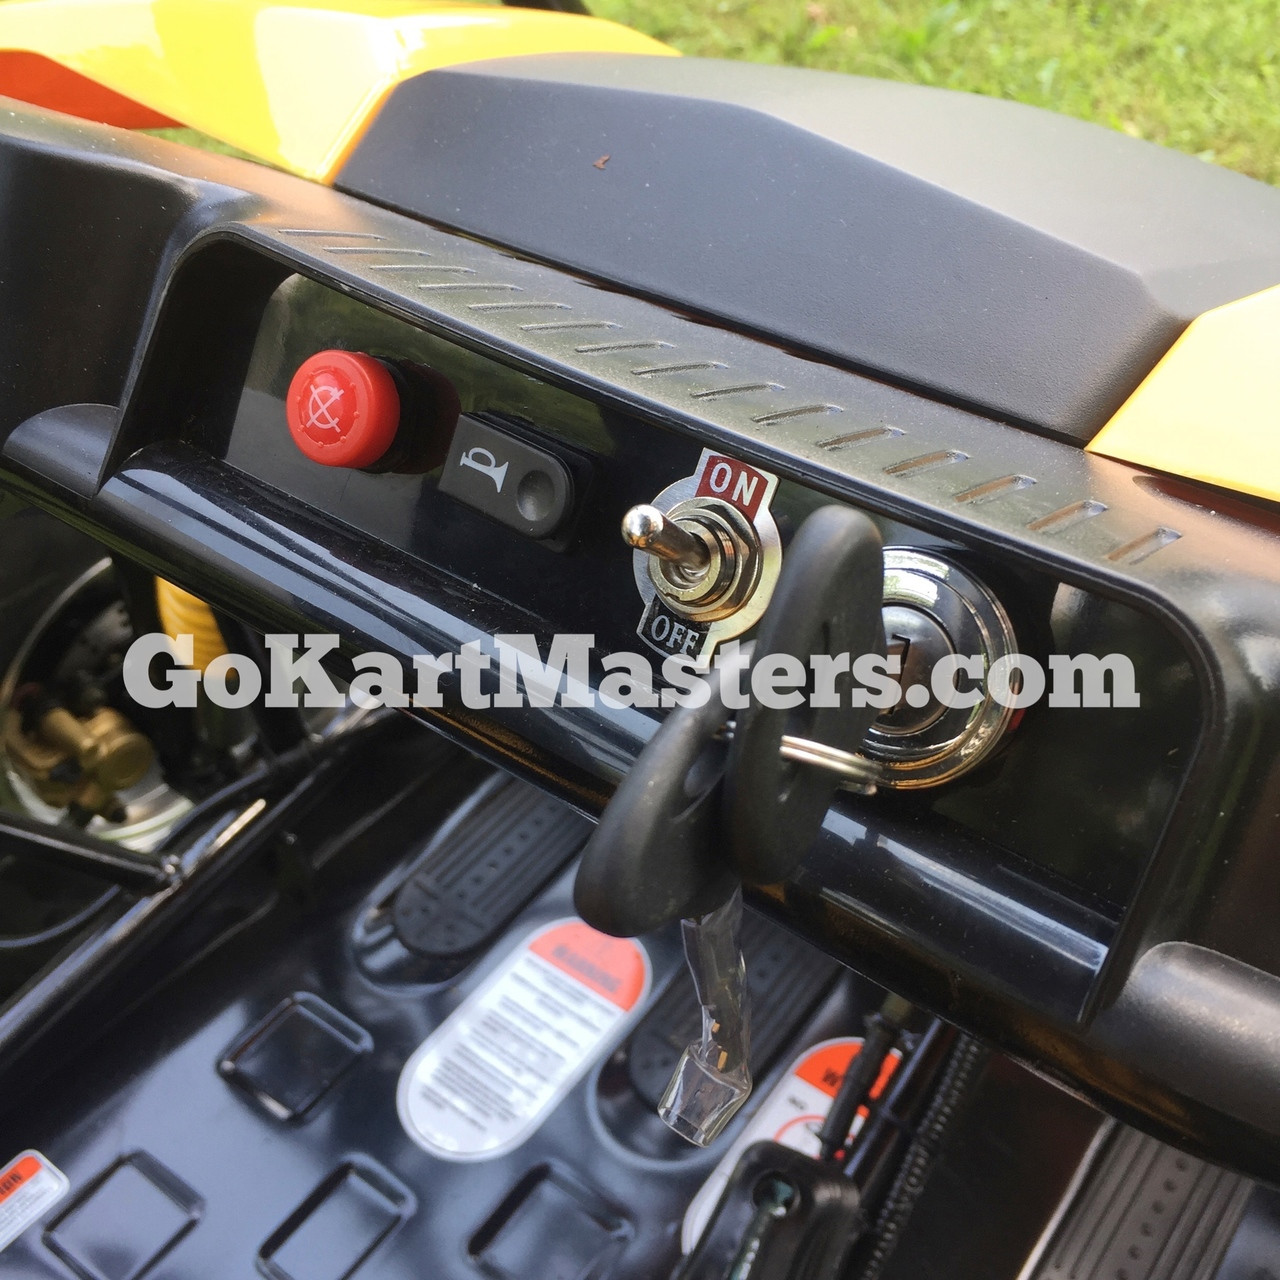 TrailMaster Blazer4 150 Go Kart - Instrument Panel